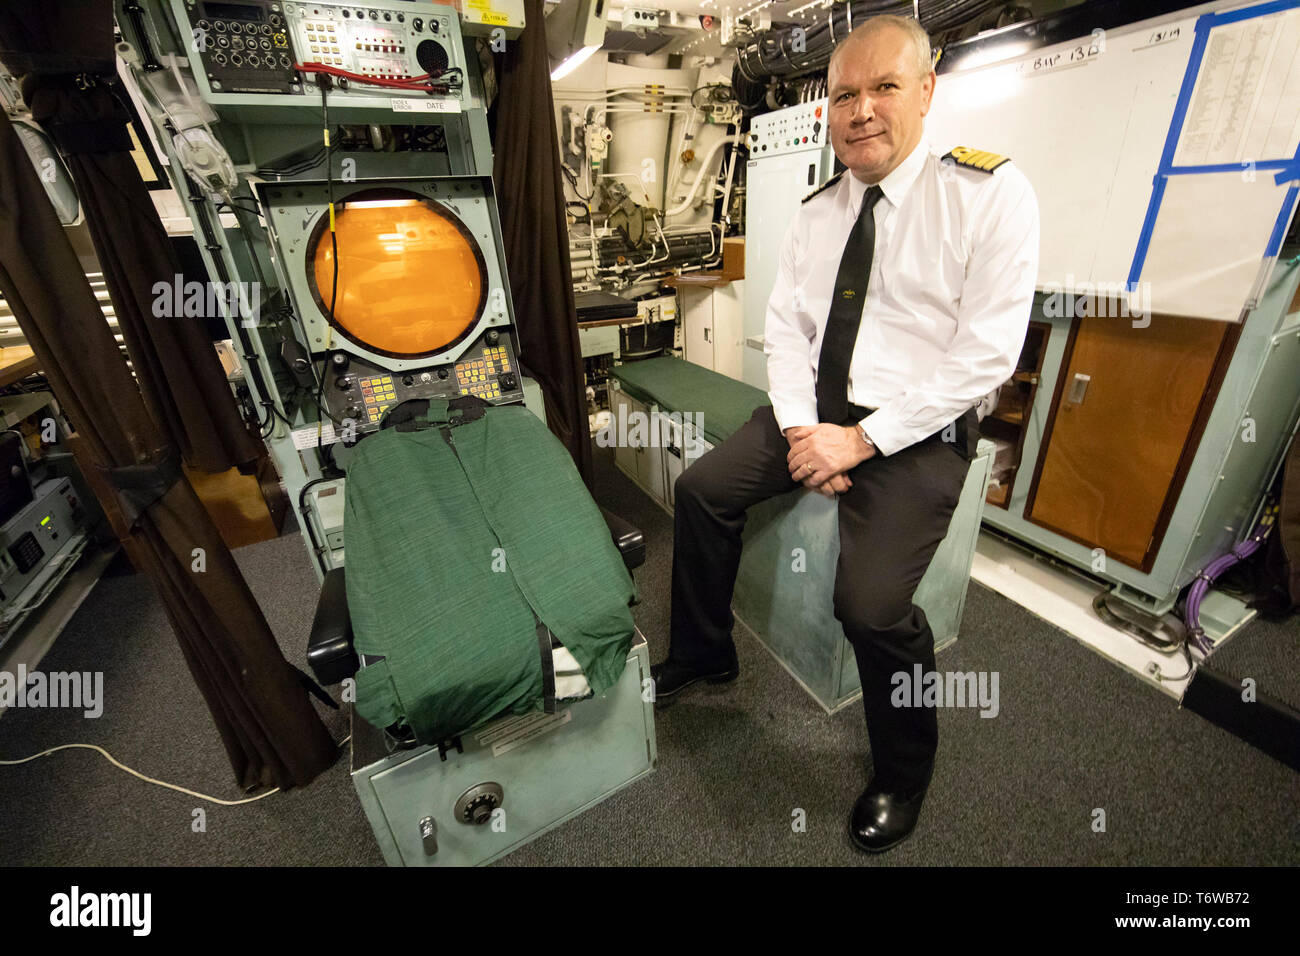 Embargoed to 0001 Friday May 3 Commander Neil Lamont, on board HMS Vigilant at HM Naval Base Clyde, Faslane, the Vanguard-class submarine carries the UK's Trident nuclear deterrent. - Stock Image